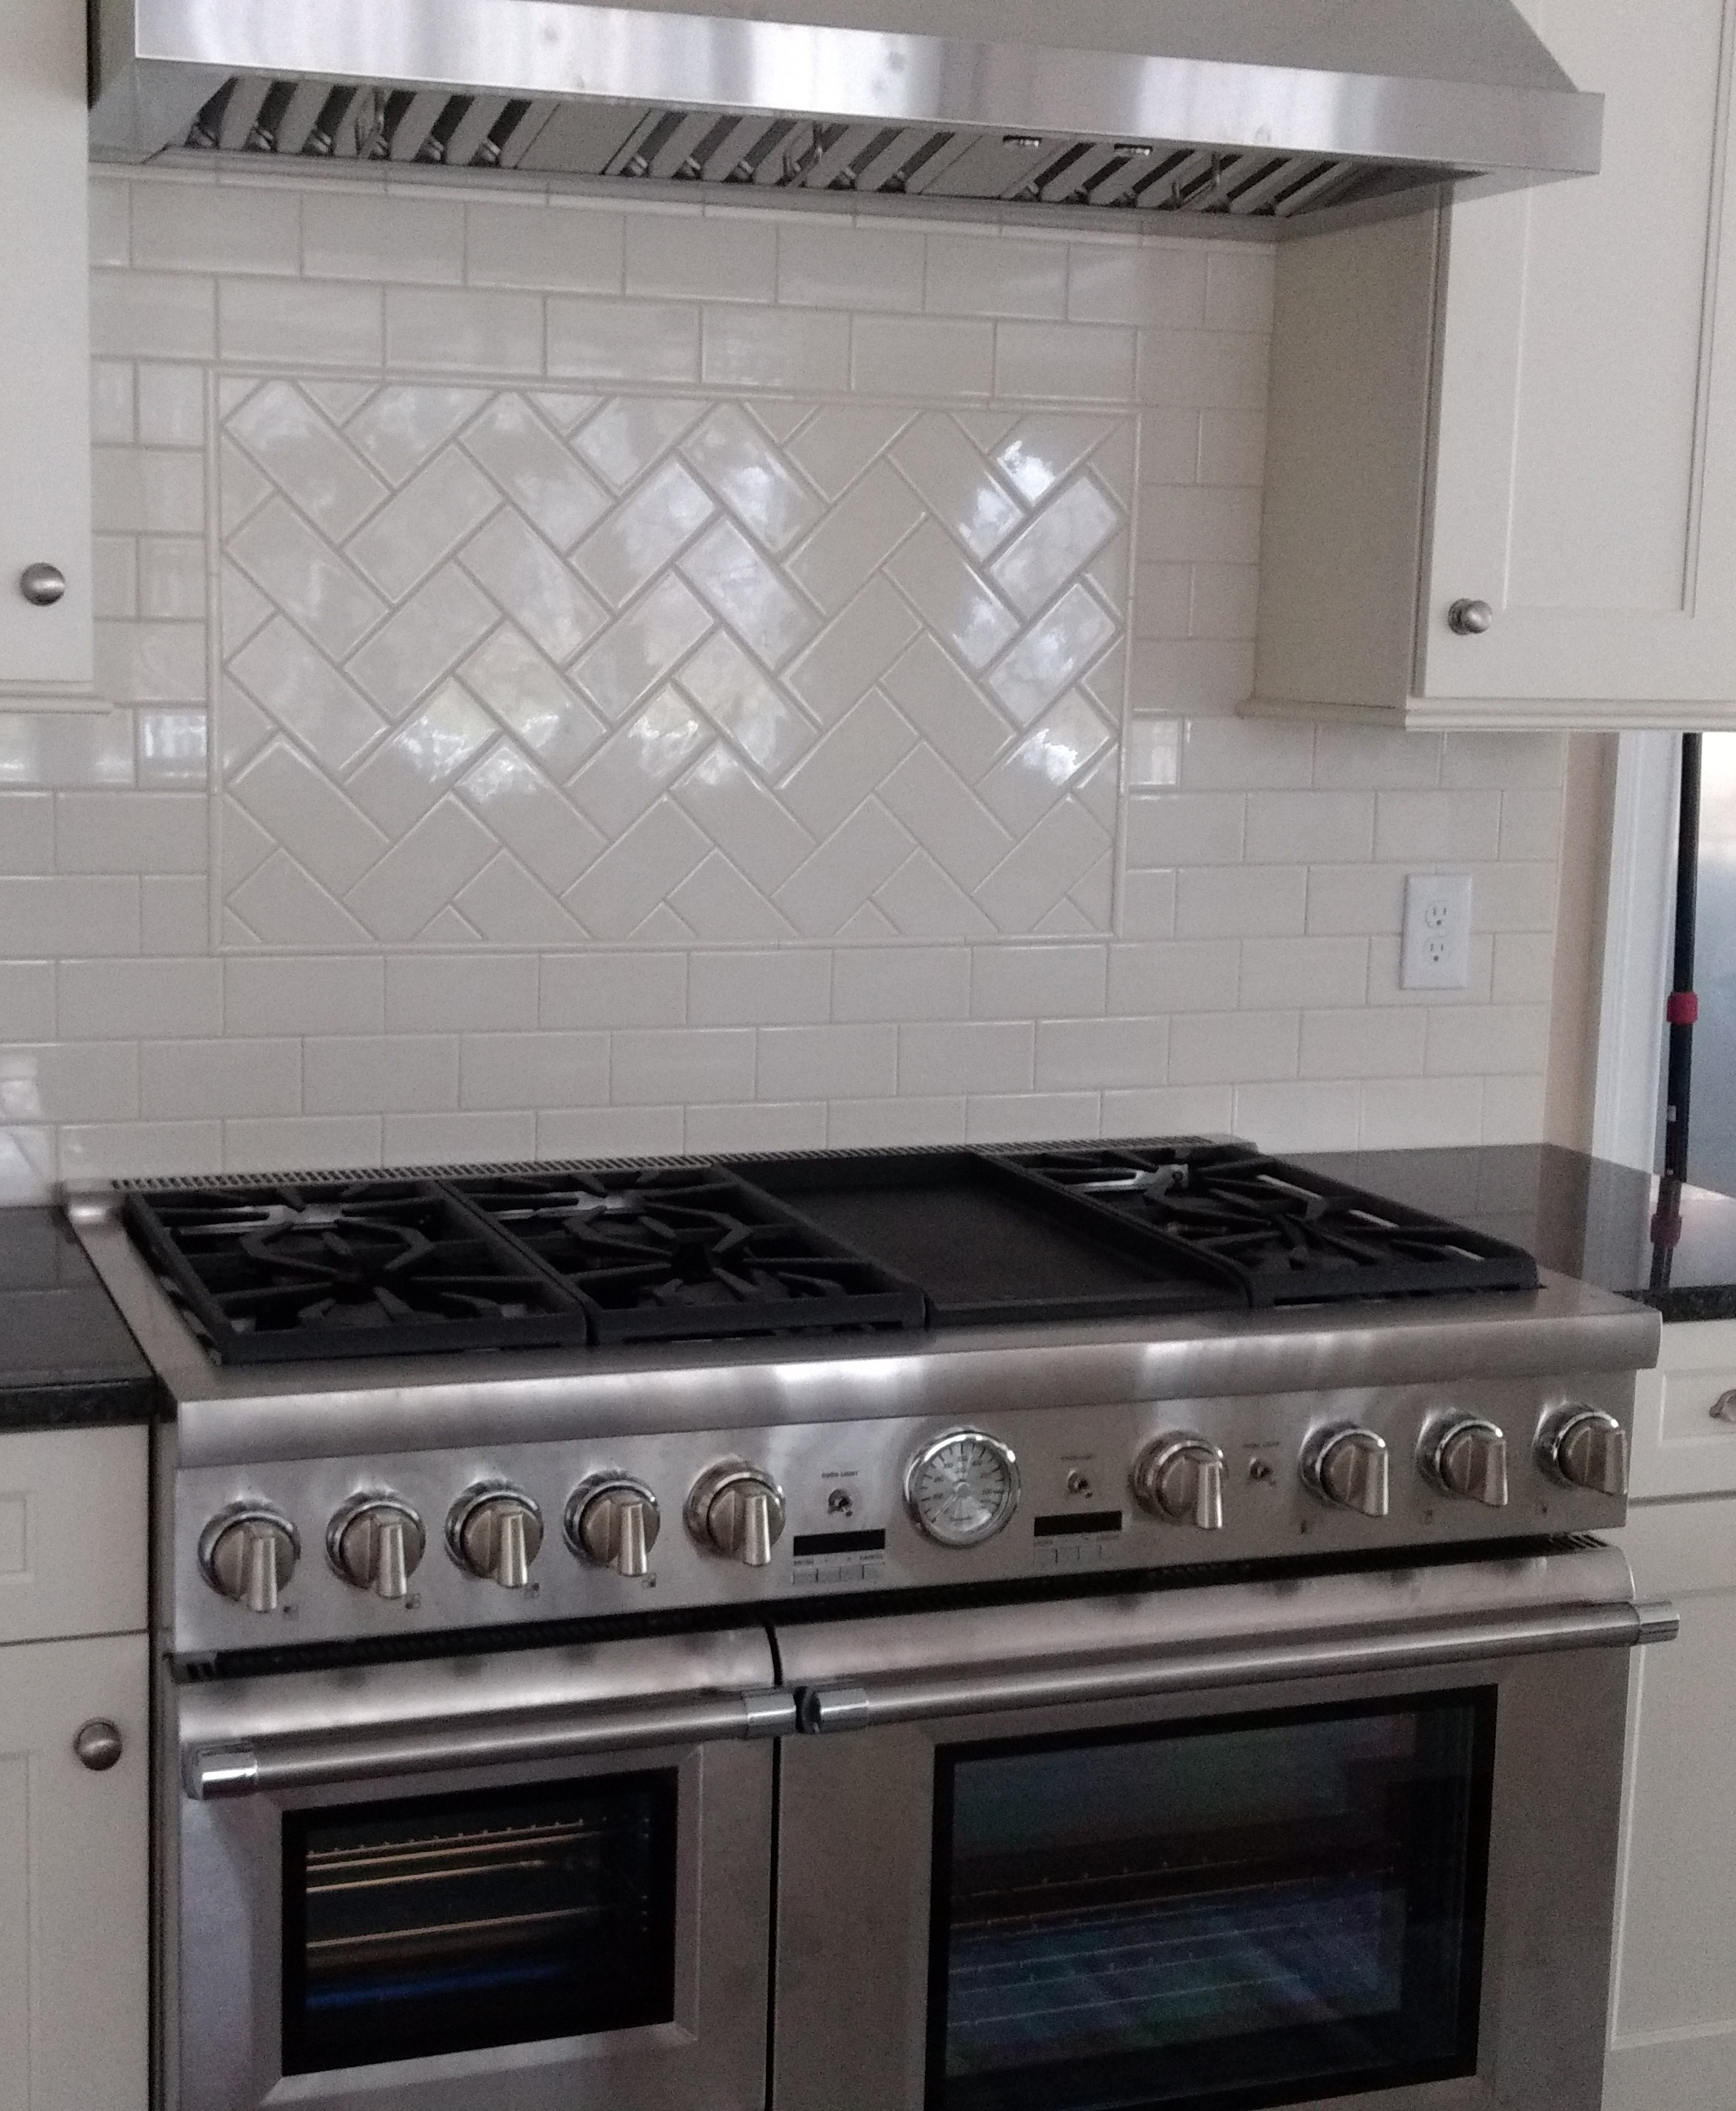 Herringbone subway tile pattern behind freshly installed stove and hood